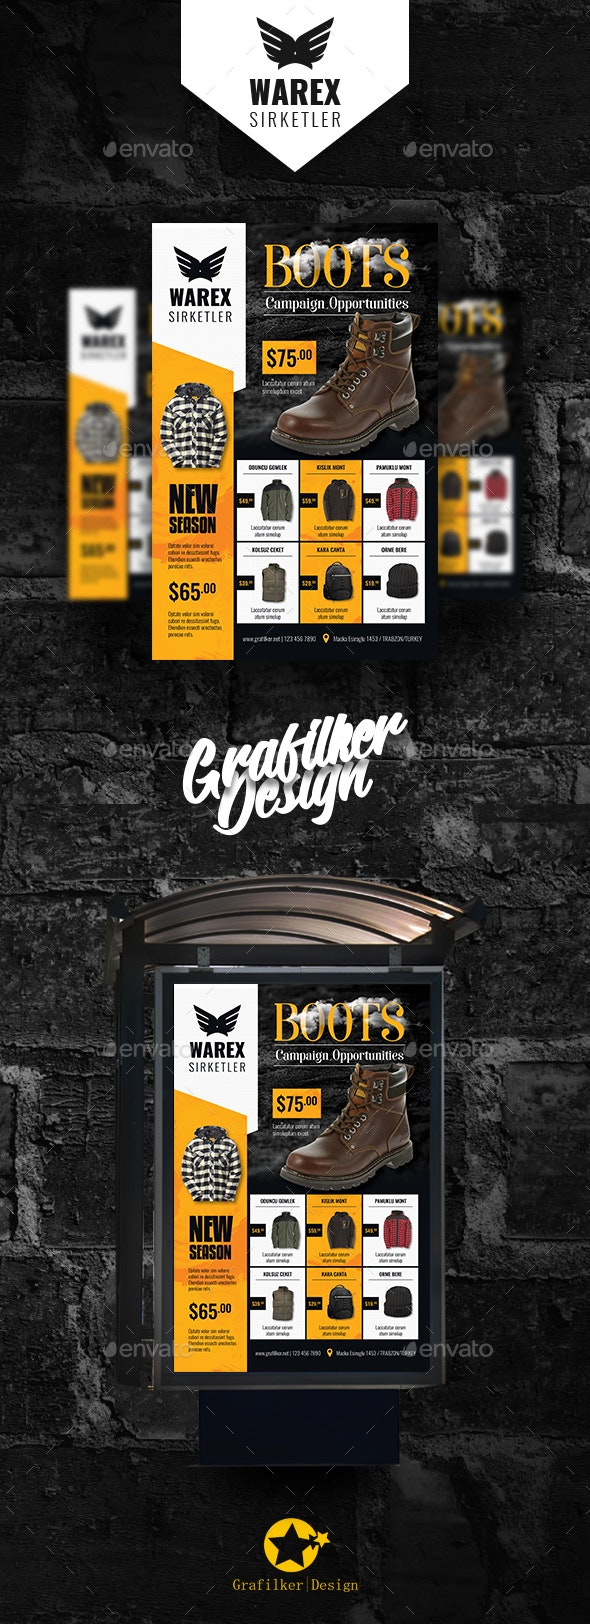 Shopping Product Poster Templates - Signage Print Templates